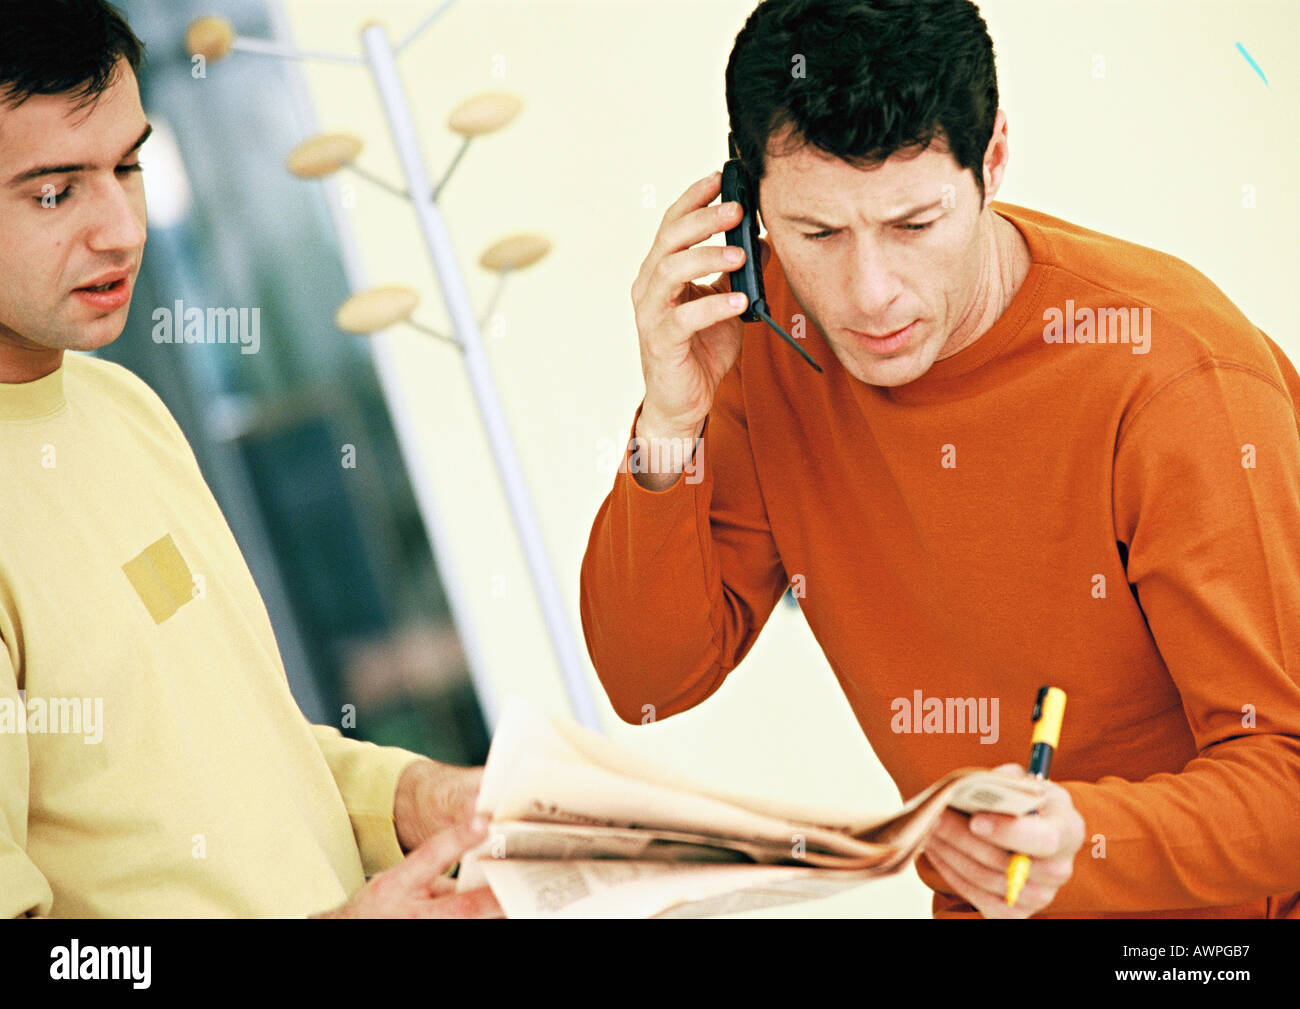 Men looking at newspaper, one using cell phone Stock Photo